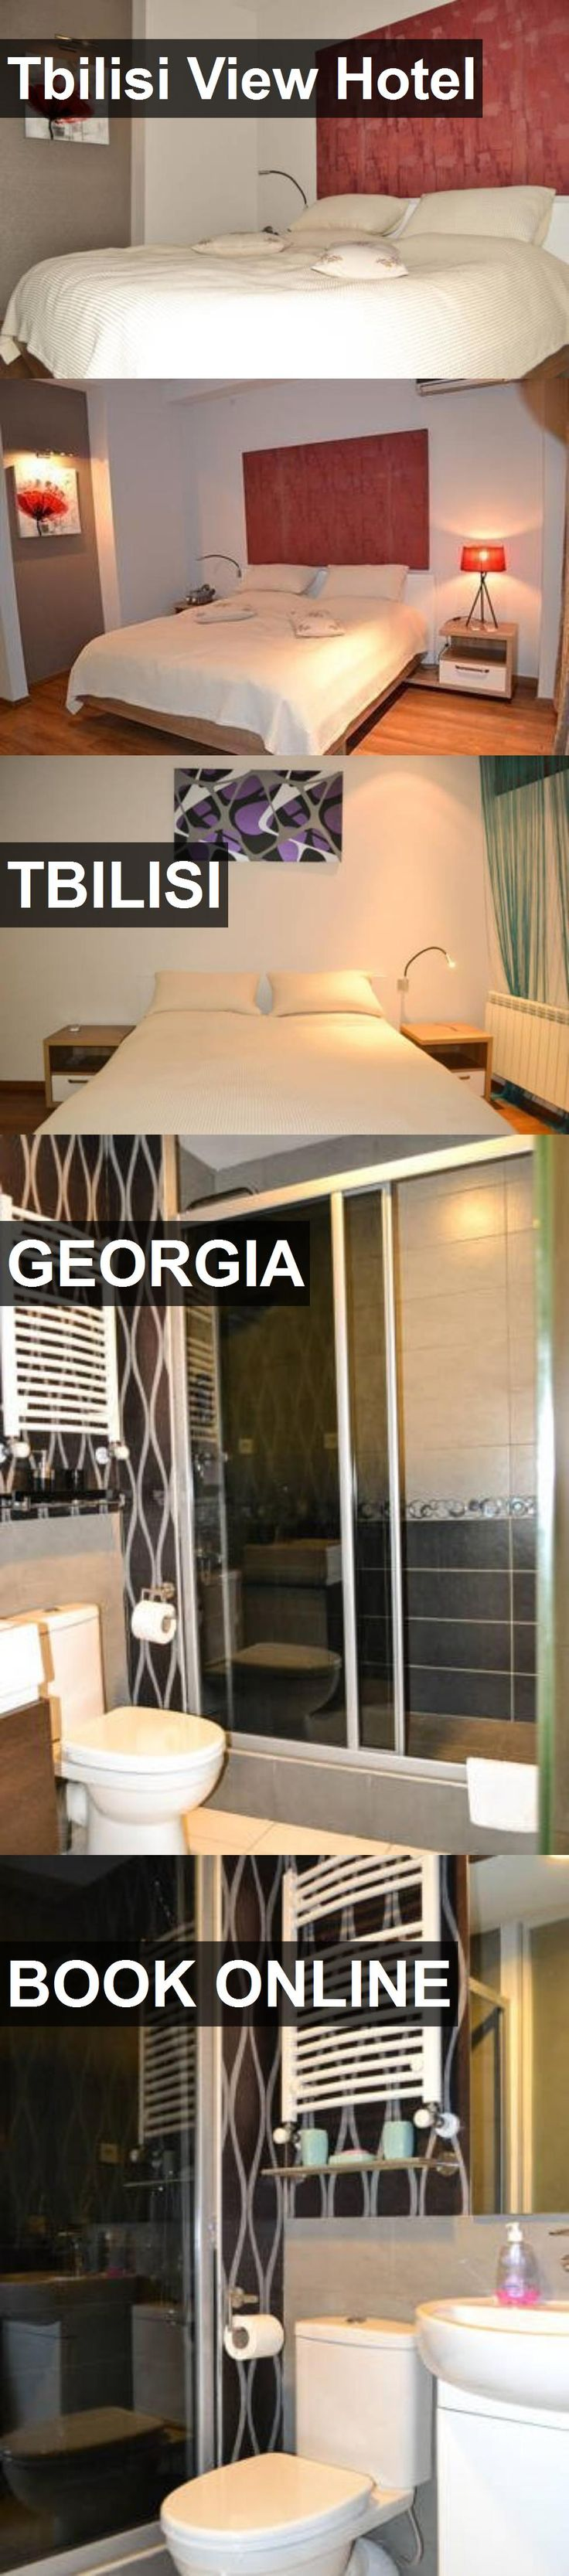 Tbilisi View Hotel in Tbilisi, Georgia. For more information, photos, reviews and best prices please follow the link. #Georgia #Tbilisi #travel #vacation #hotel